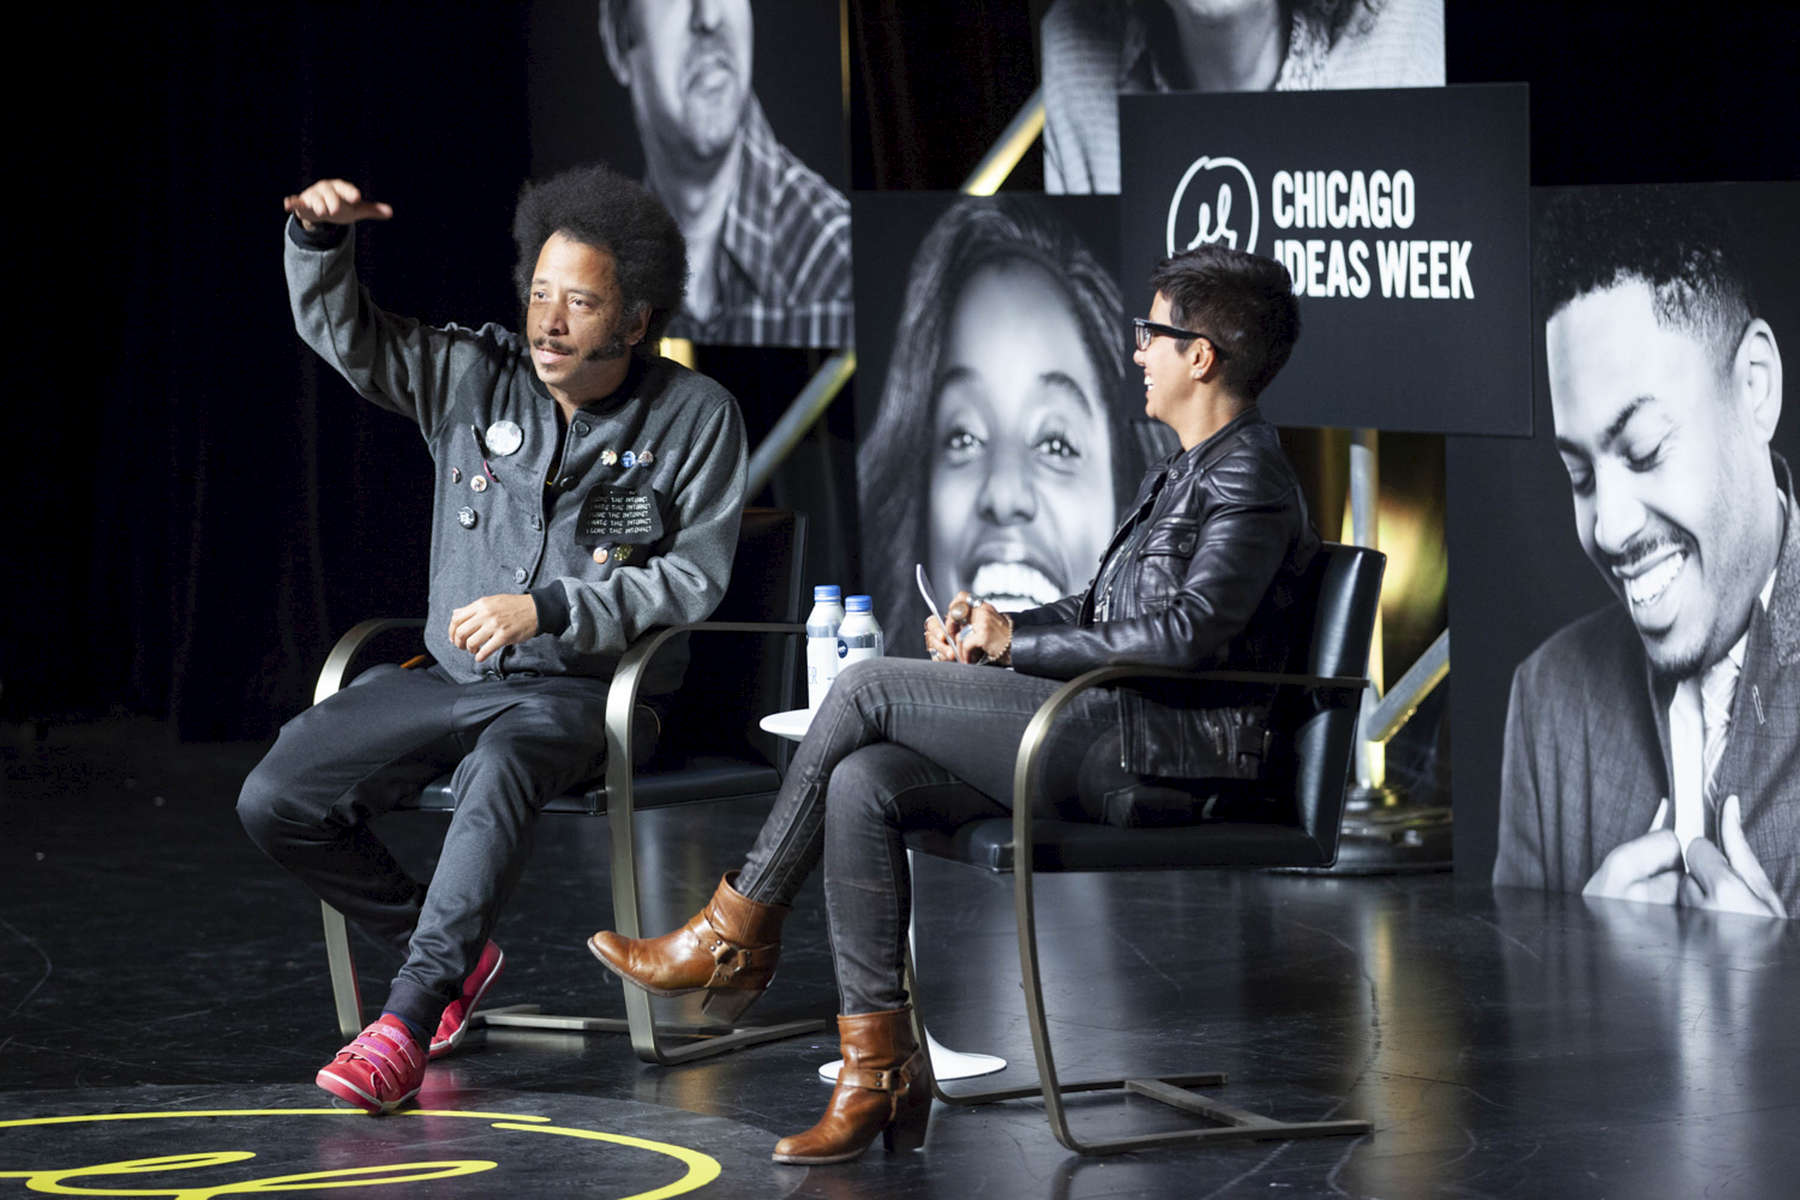 """CHICAGO, IL - OCTOBER 17: Fawzia Mirza,Actor & Writer (right) interviews Boots Riley, Writer & Director (left) during """"Radical Creators: The Cultural Leaders Defining the Zeitgeist"""" at the Edlis Neeson Theater. (Photo by Beth Rooney/Chicago Ideas Week)"""